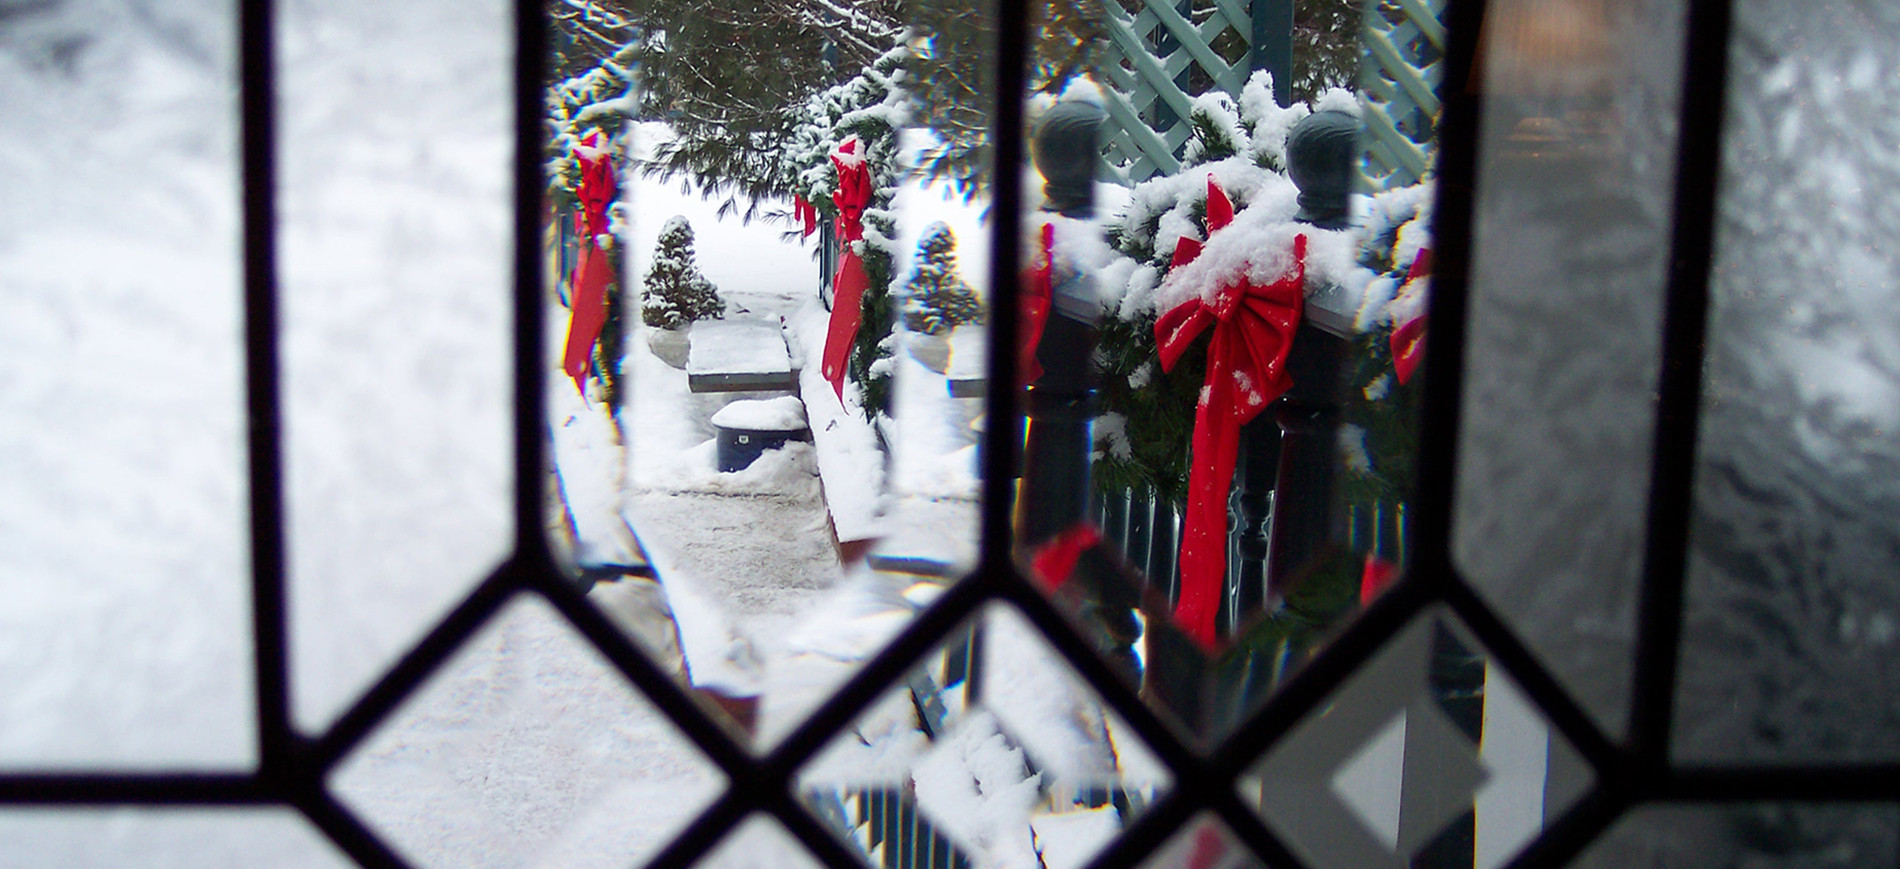 Clear stained glass with view of evergreen roping & red bows in snow outside